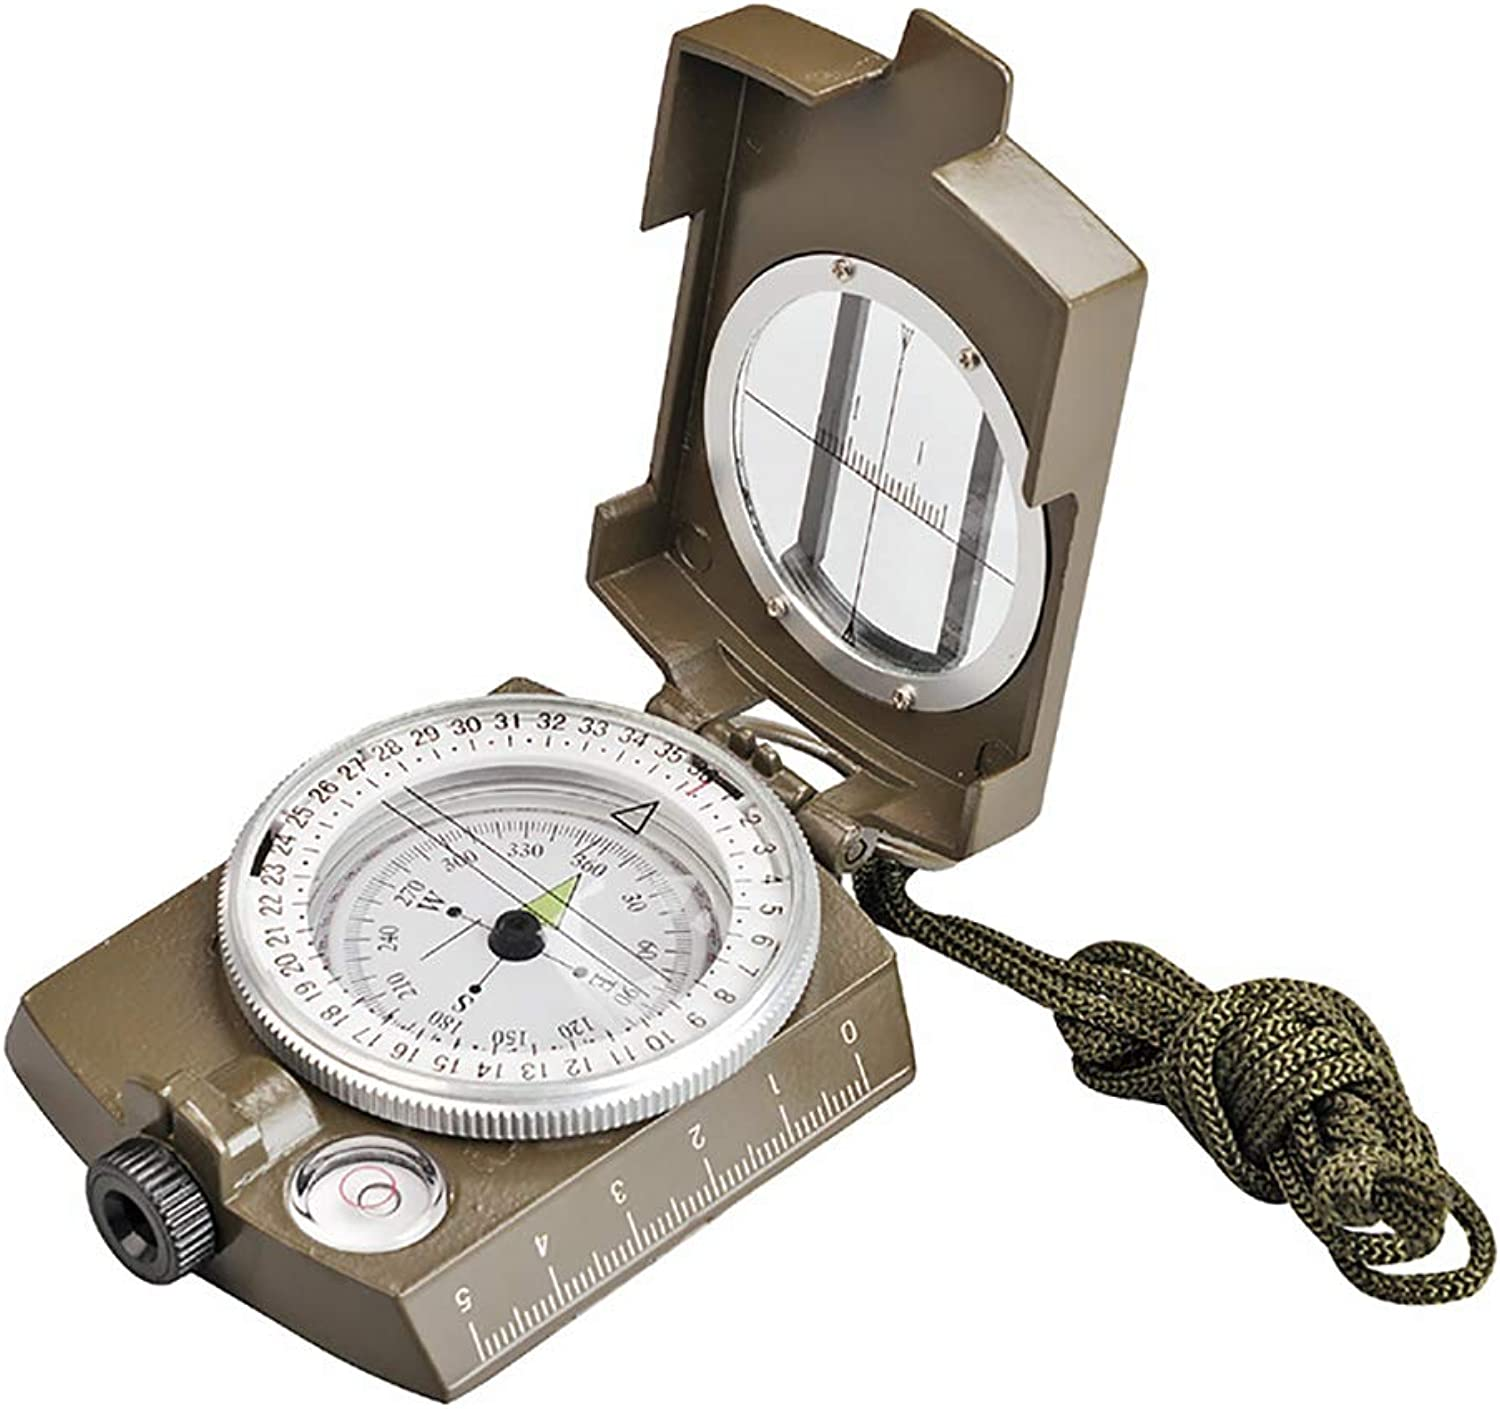 Outdoor MultiFunction Geological Compass Instrument American Compass Luminous Waterproof Compass